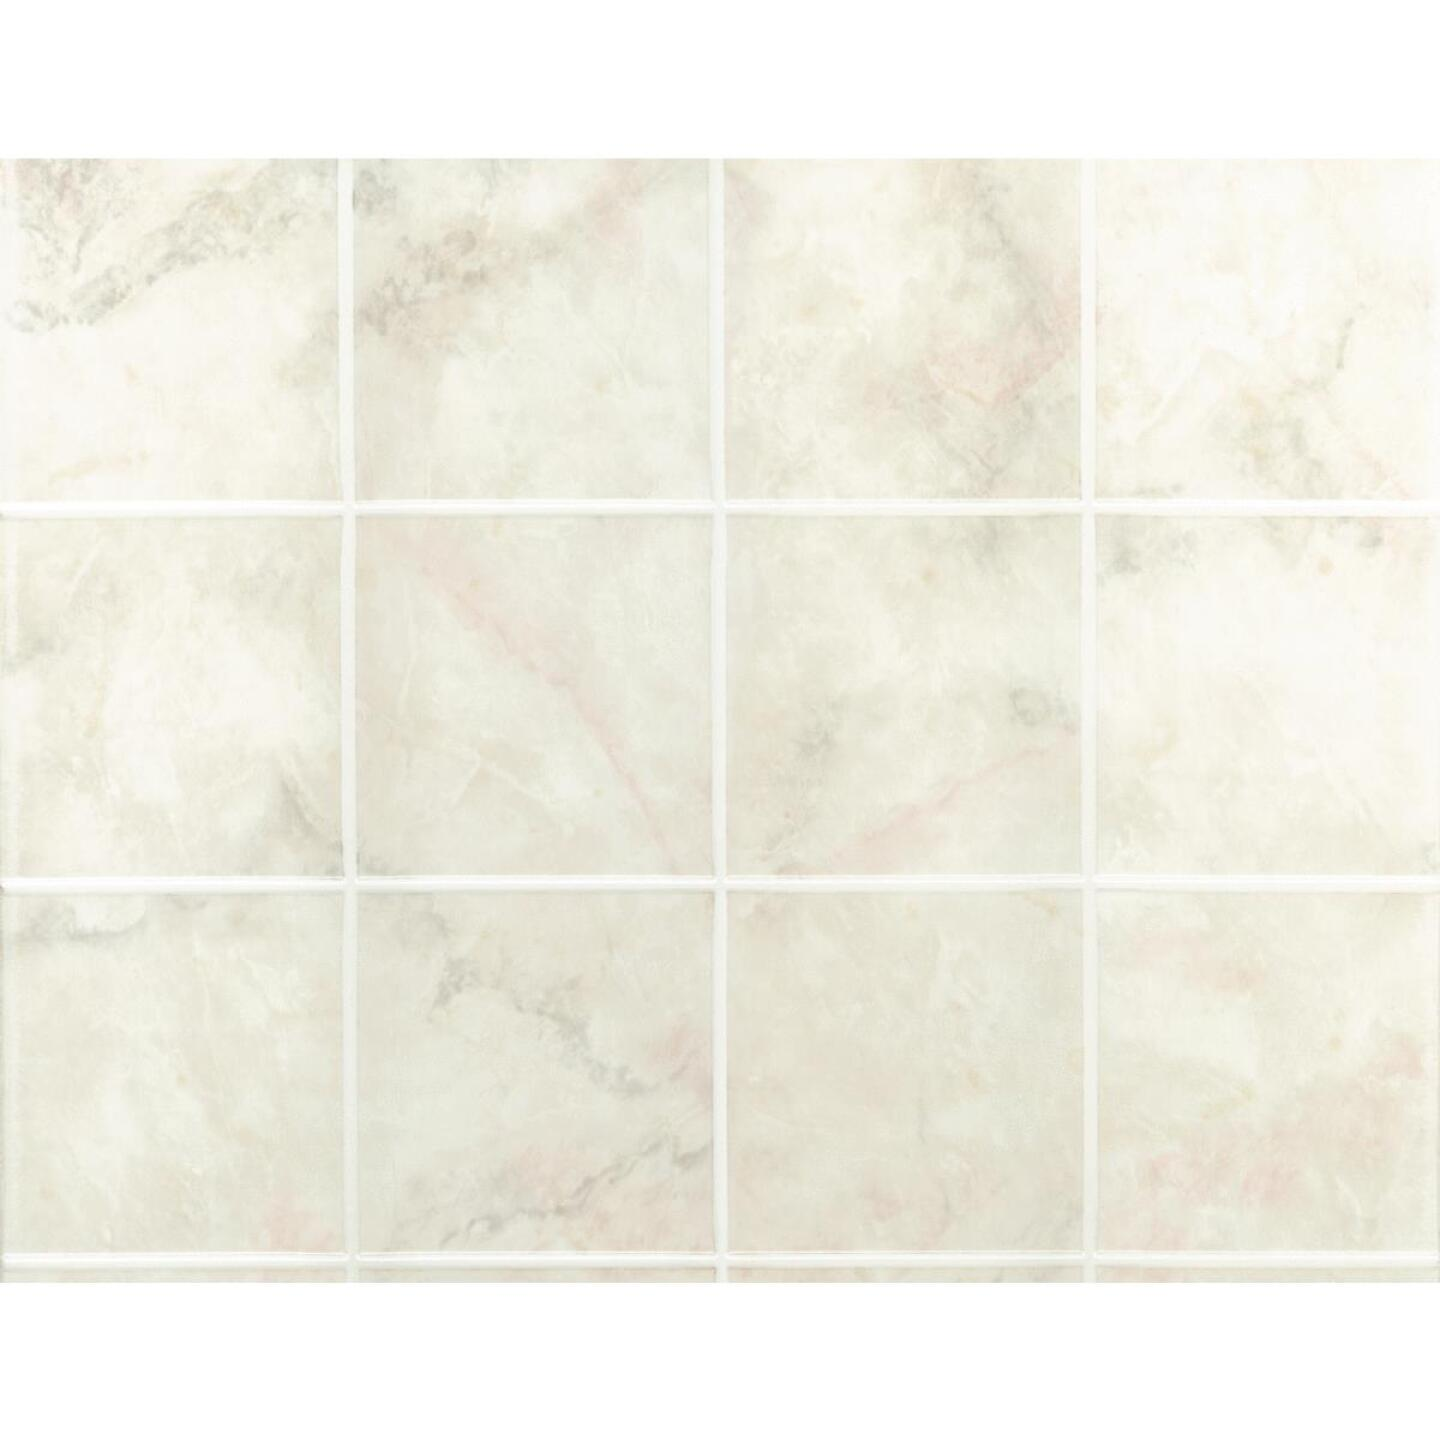 DPI AquaTile 4 Ft. x 8 Ft. x 1/8 In. Beige Milan Marble Tileboard Wall Paneling Image 3